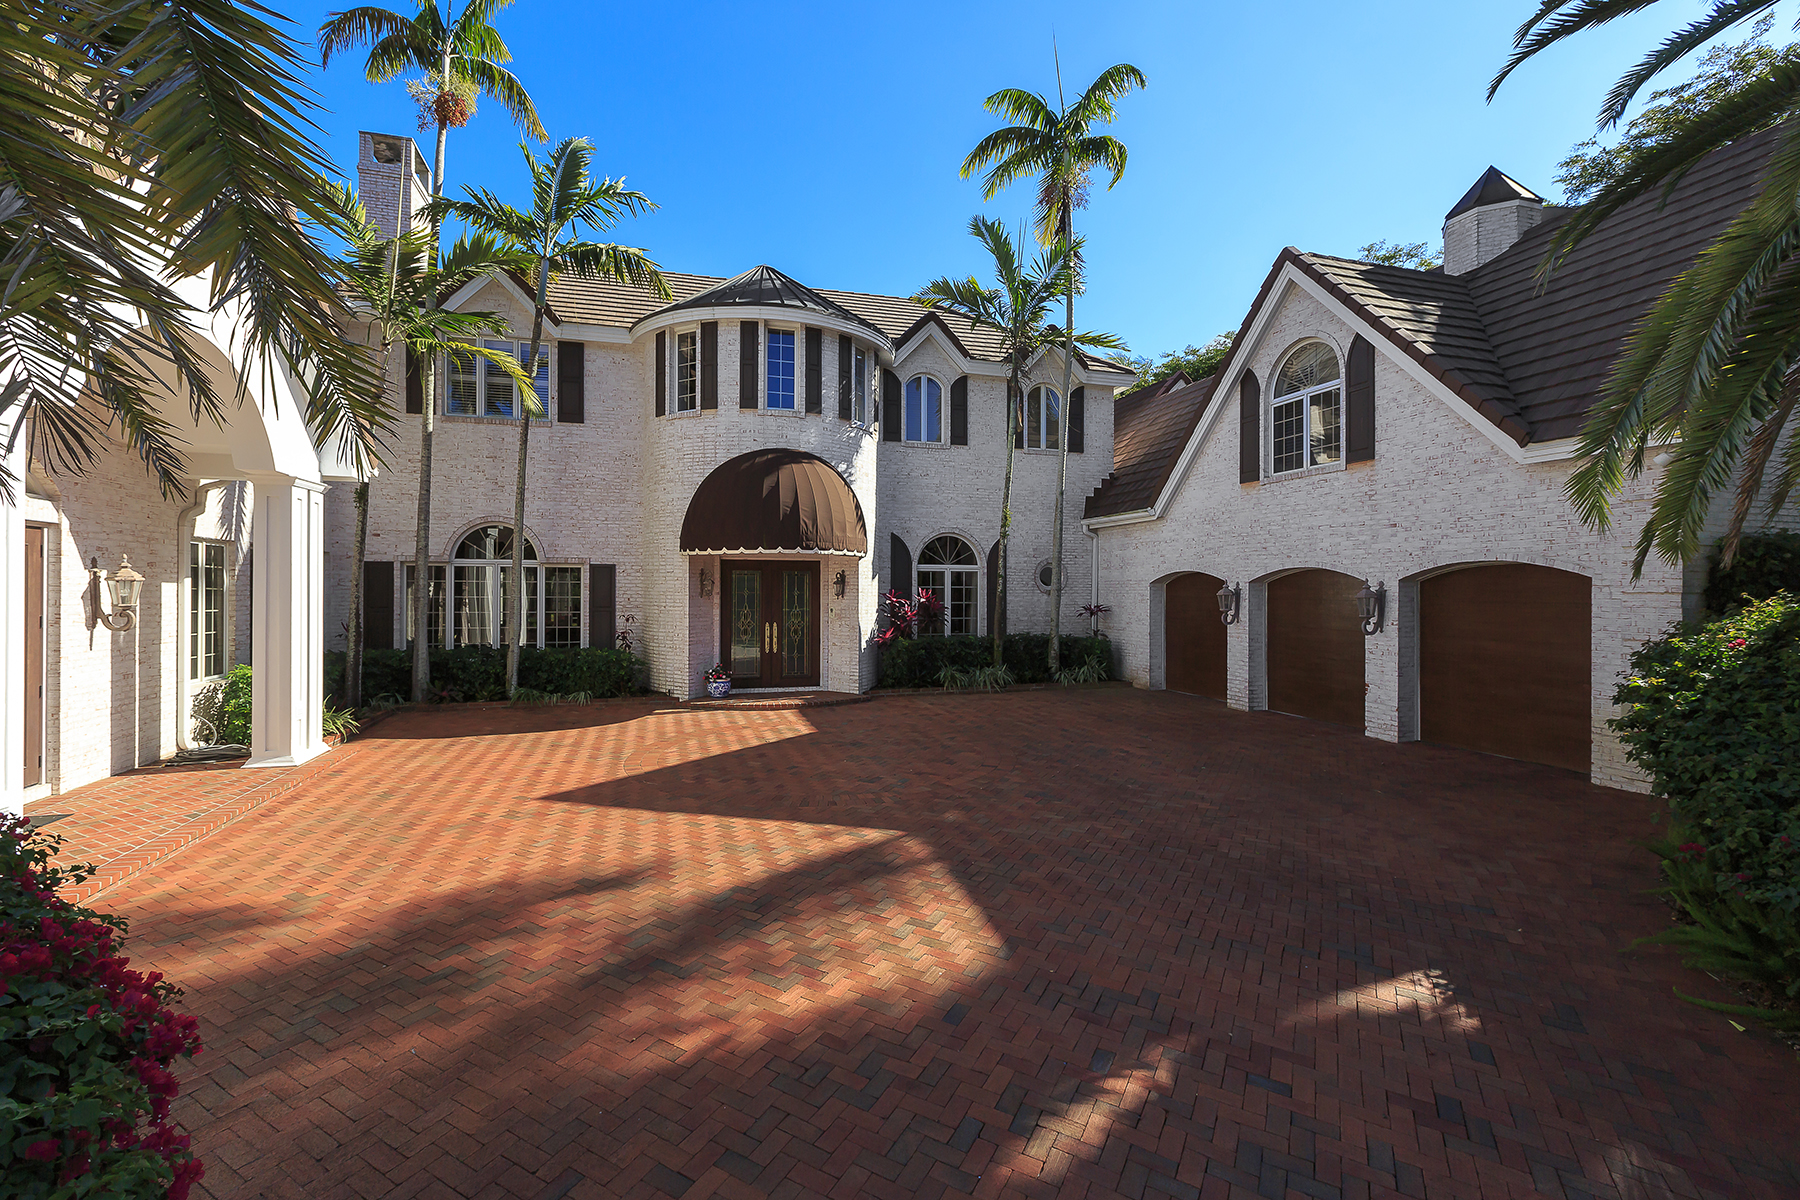 Single Family Home for Sale at PELICAN BAY - BAY COLONY SHORES 356 Cromwell Ct Naples, Florida, 34108 United States